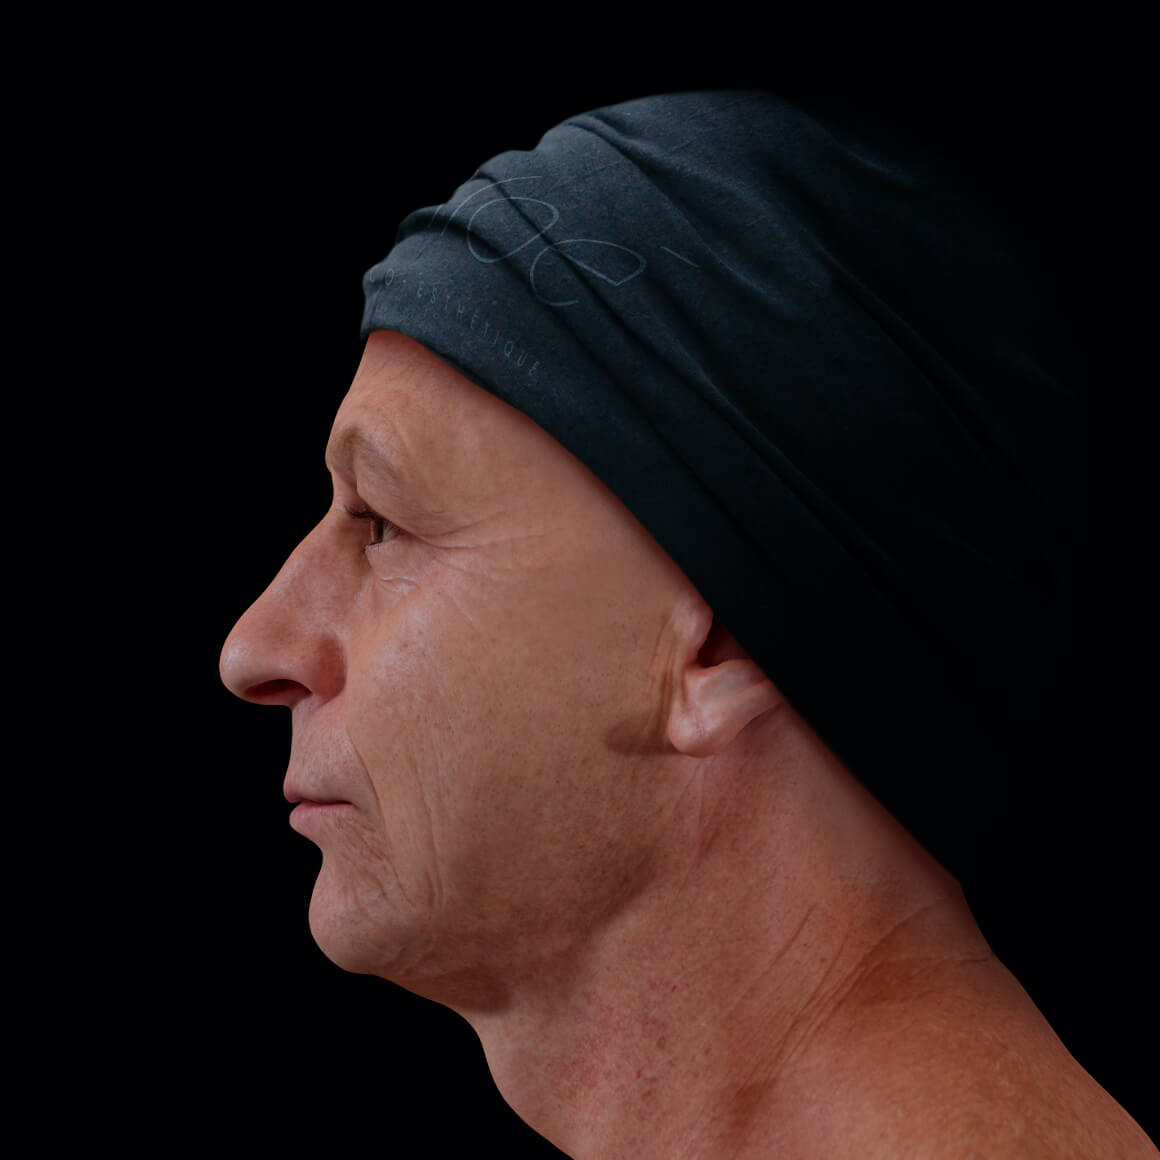 Male patient from Clinique Chloé positioned sideways showing facial skin laxity